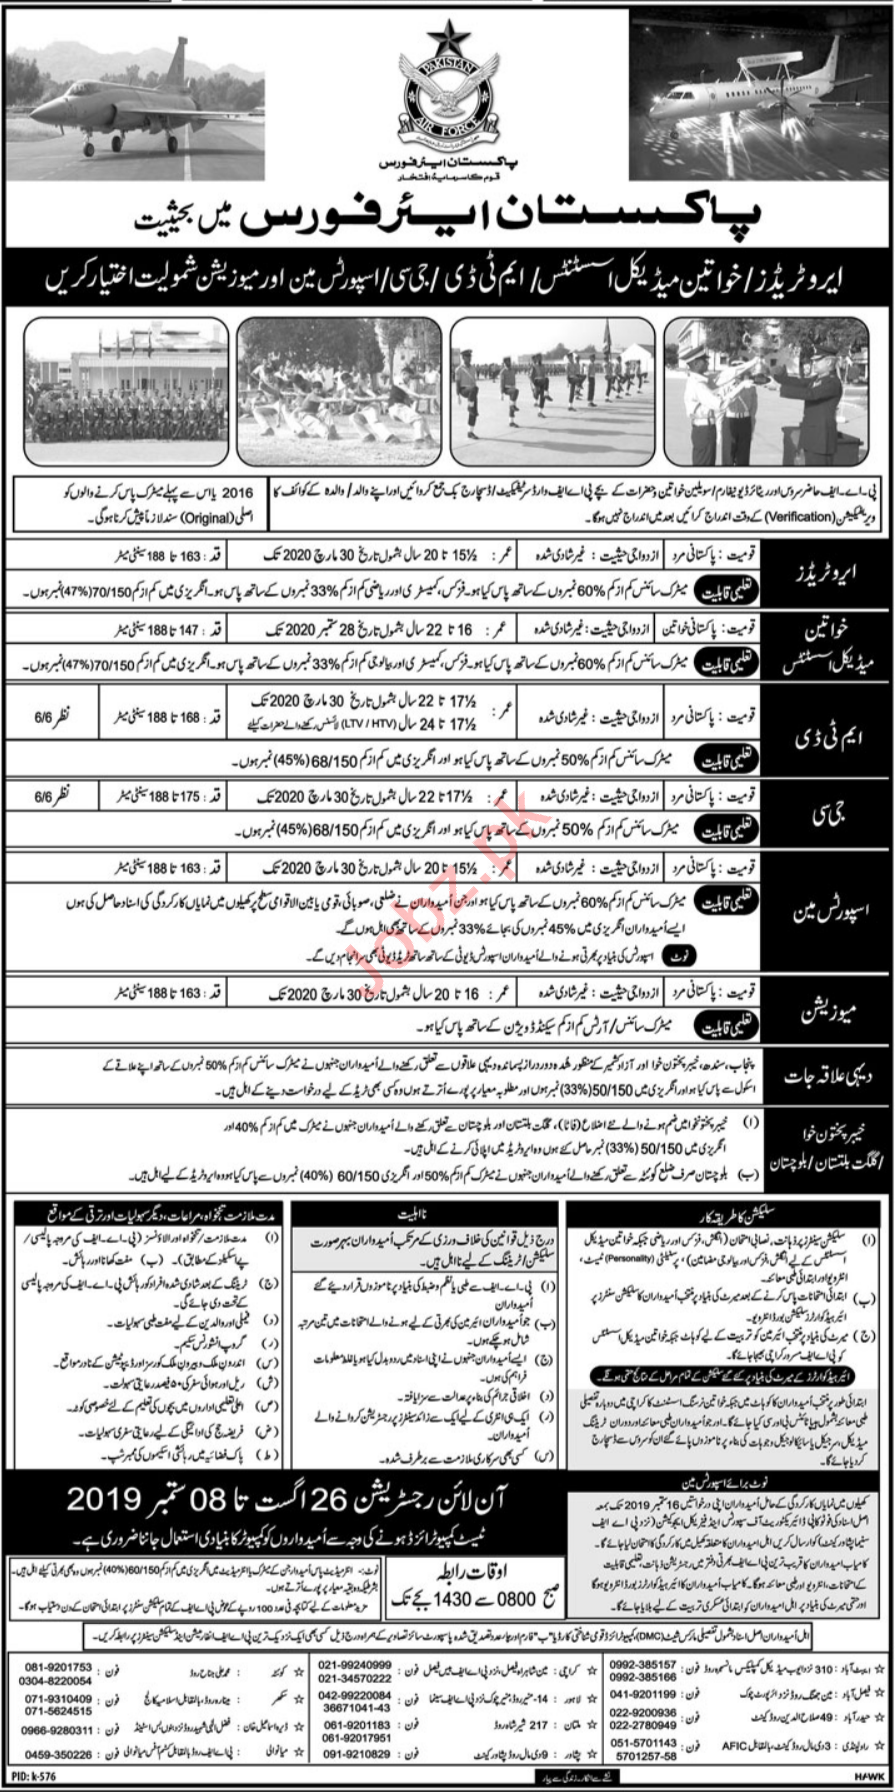 PAF Pakistan Air Force Jobs 2019